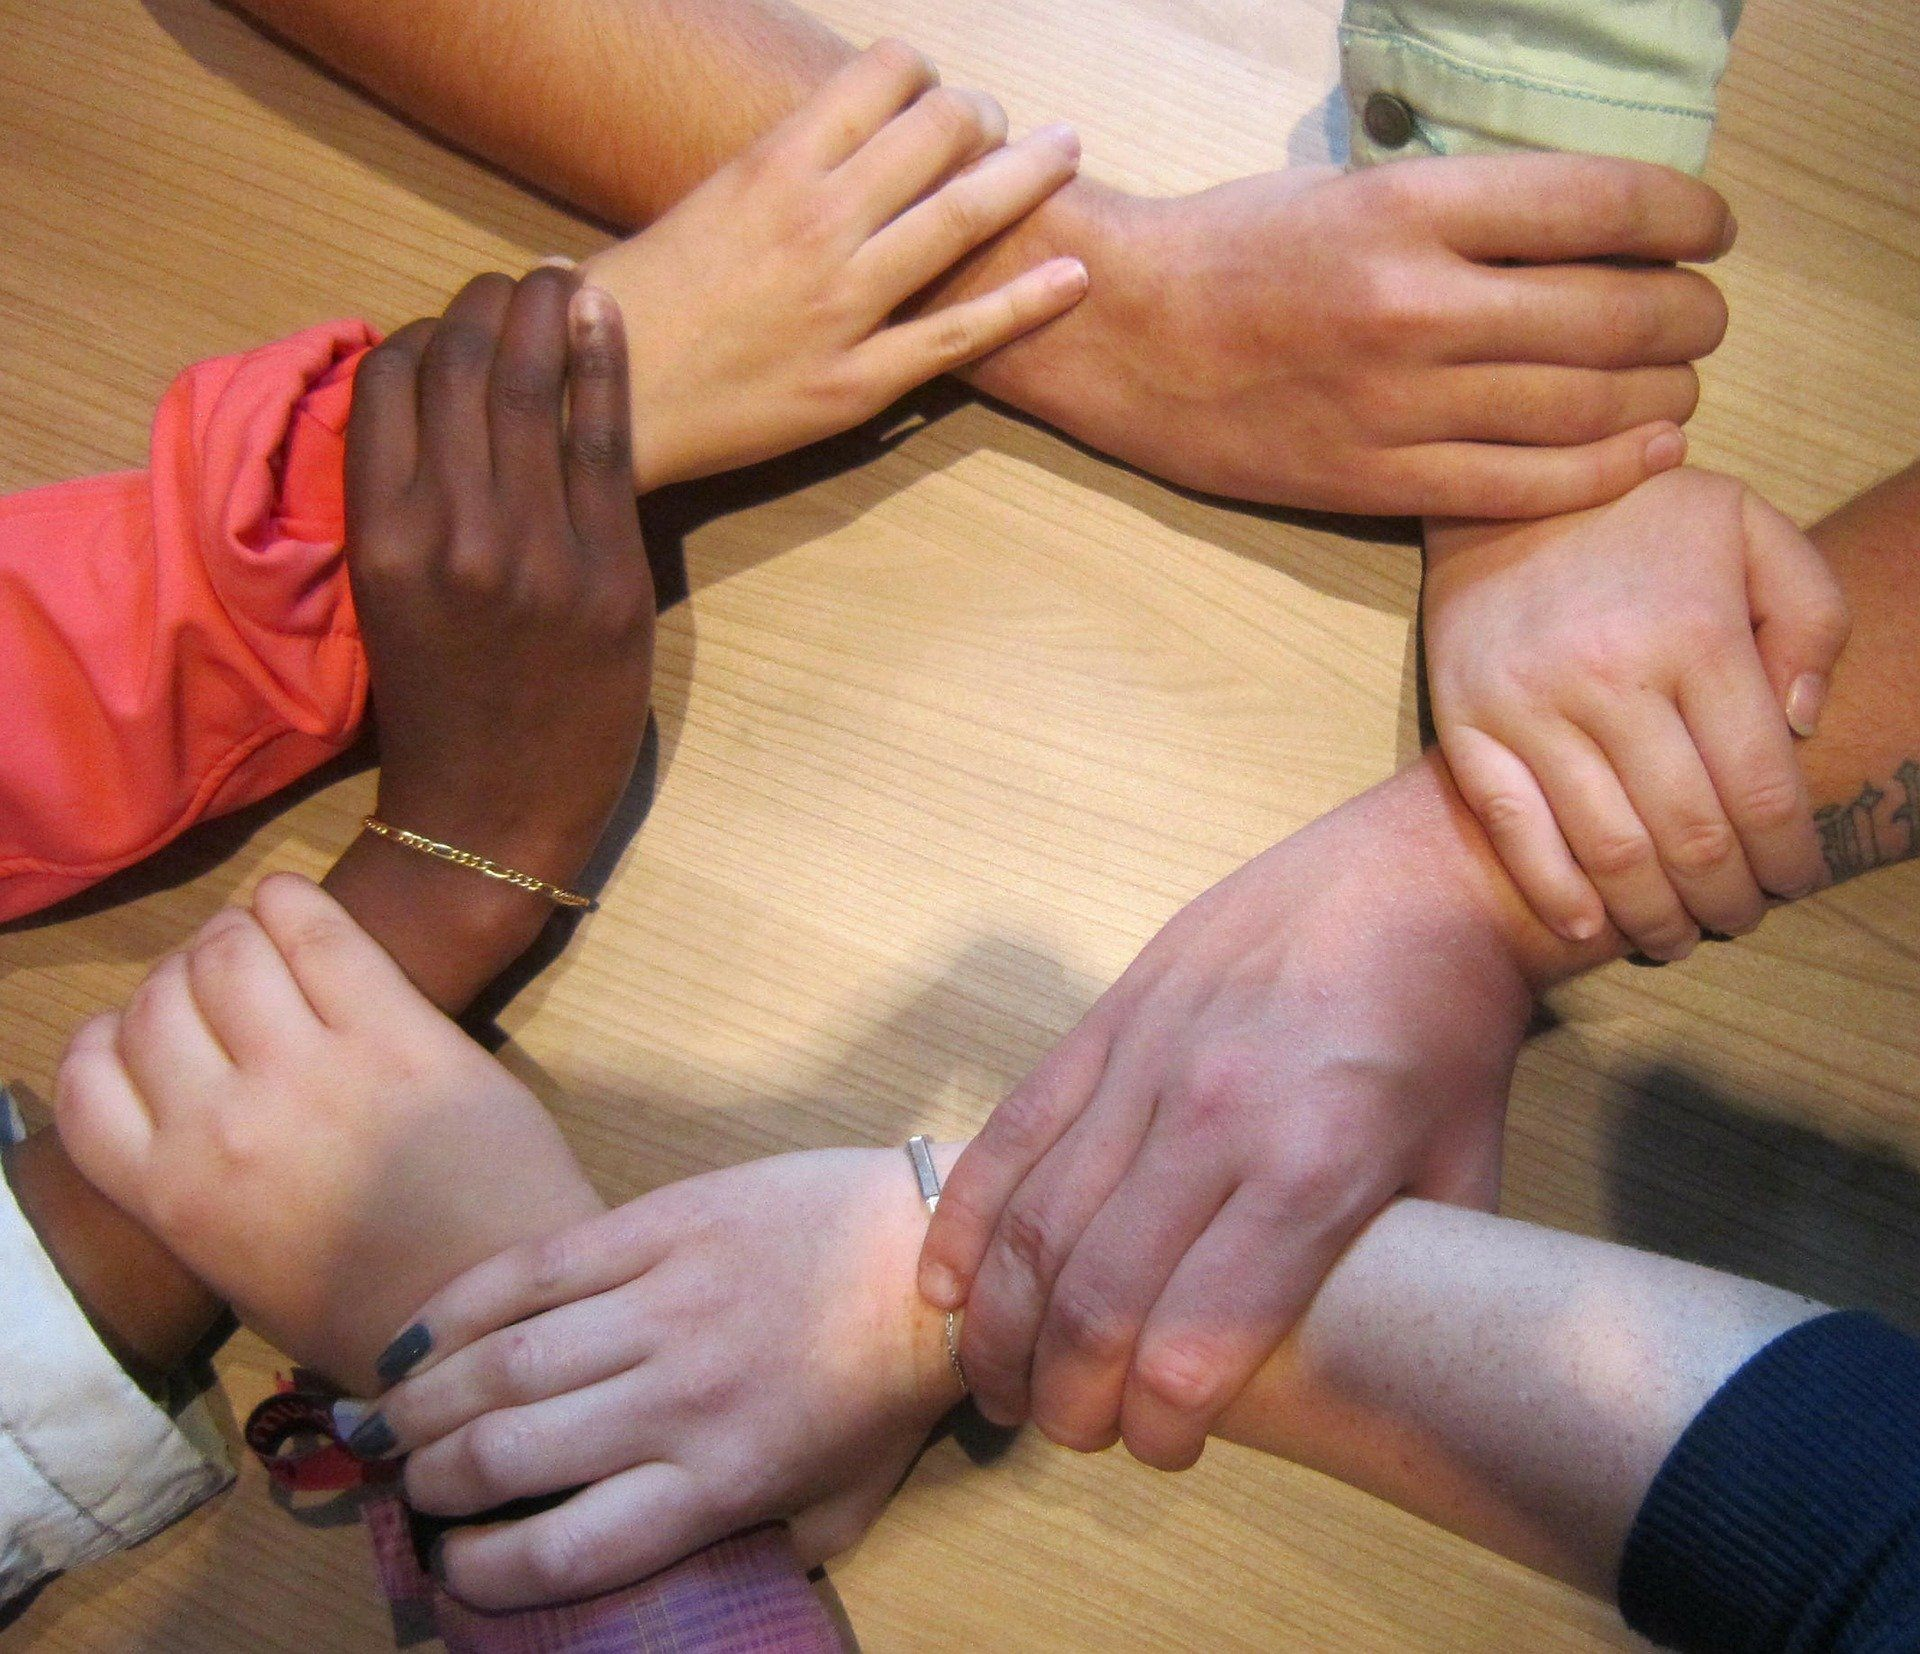 Each of us can be the hands of God